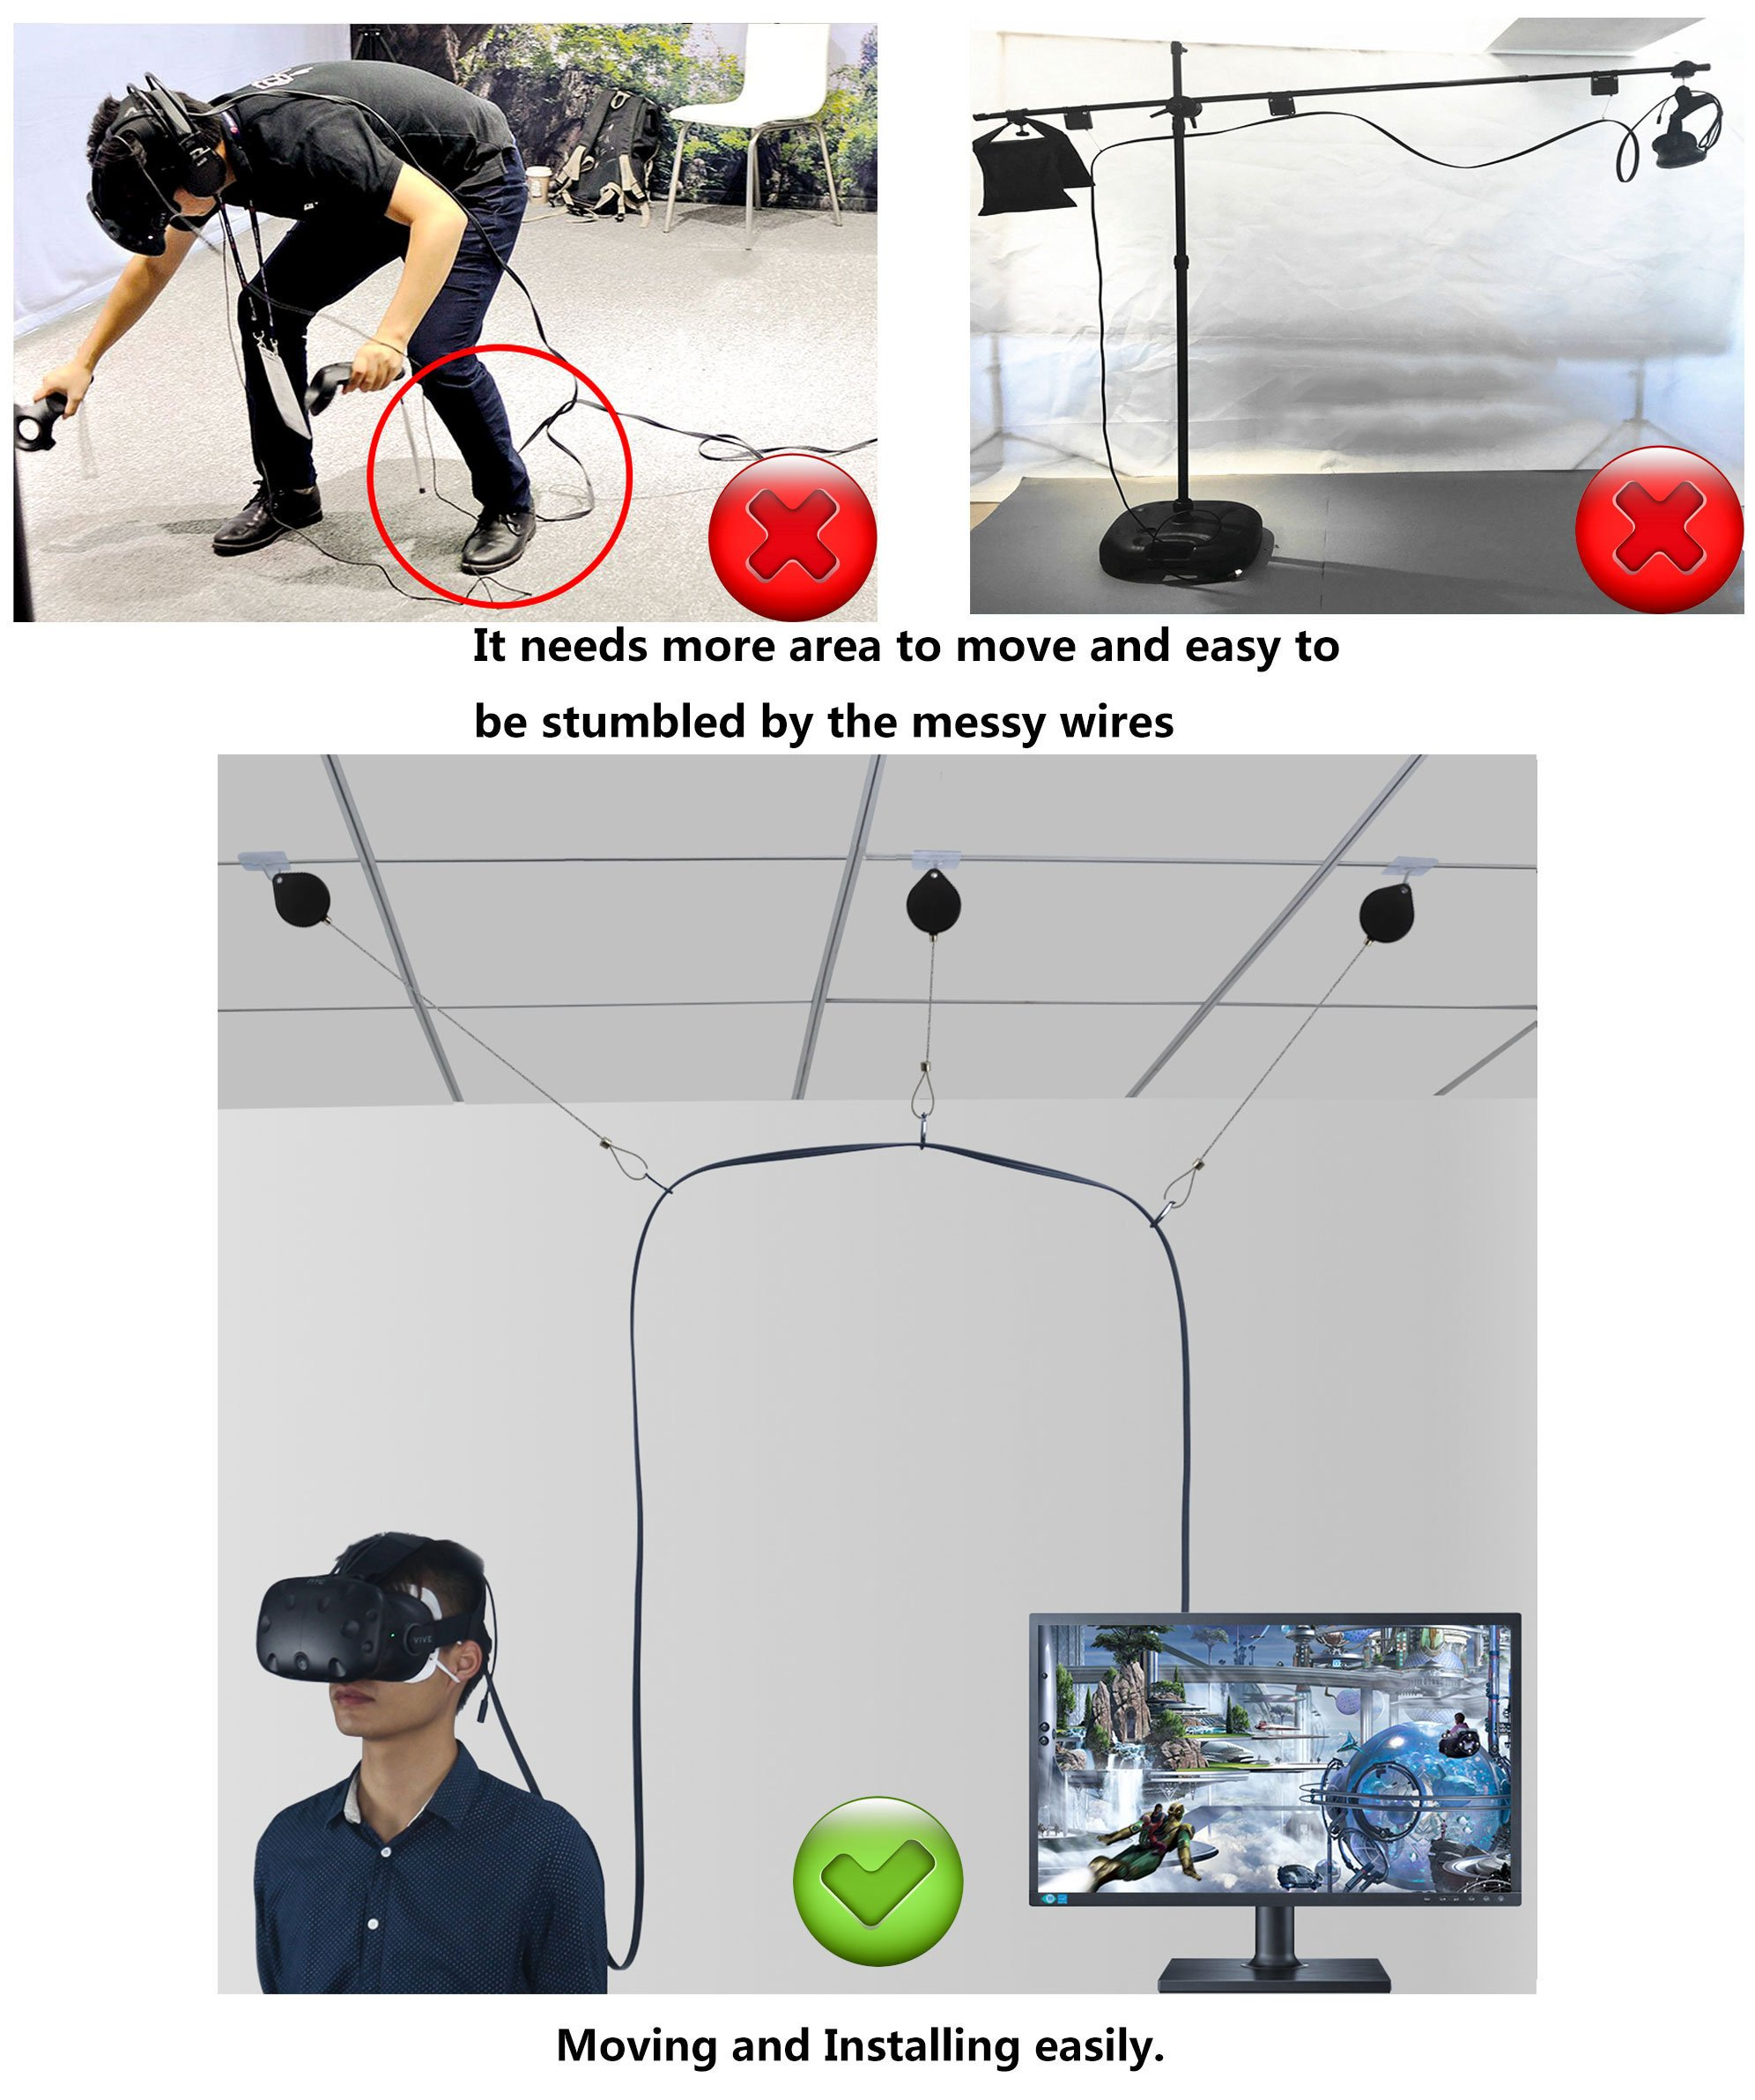 6 Packs Retractable Cable Management for HTC VIVE NEW Version System for HTC VIVE Virtual Reality Headset- MDW Adhesive Drill Free by MDW (Image #3)